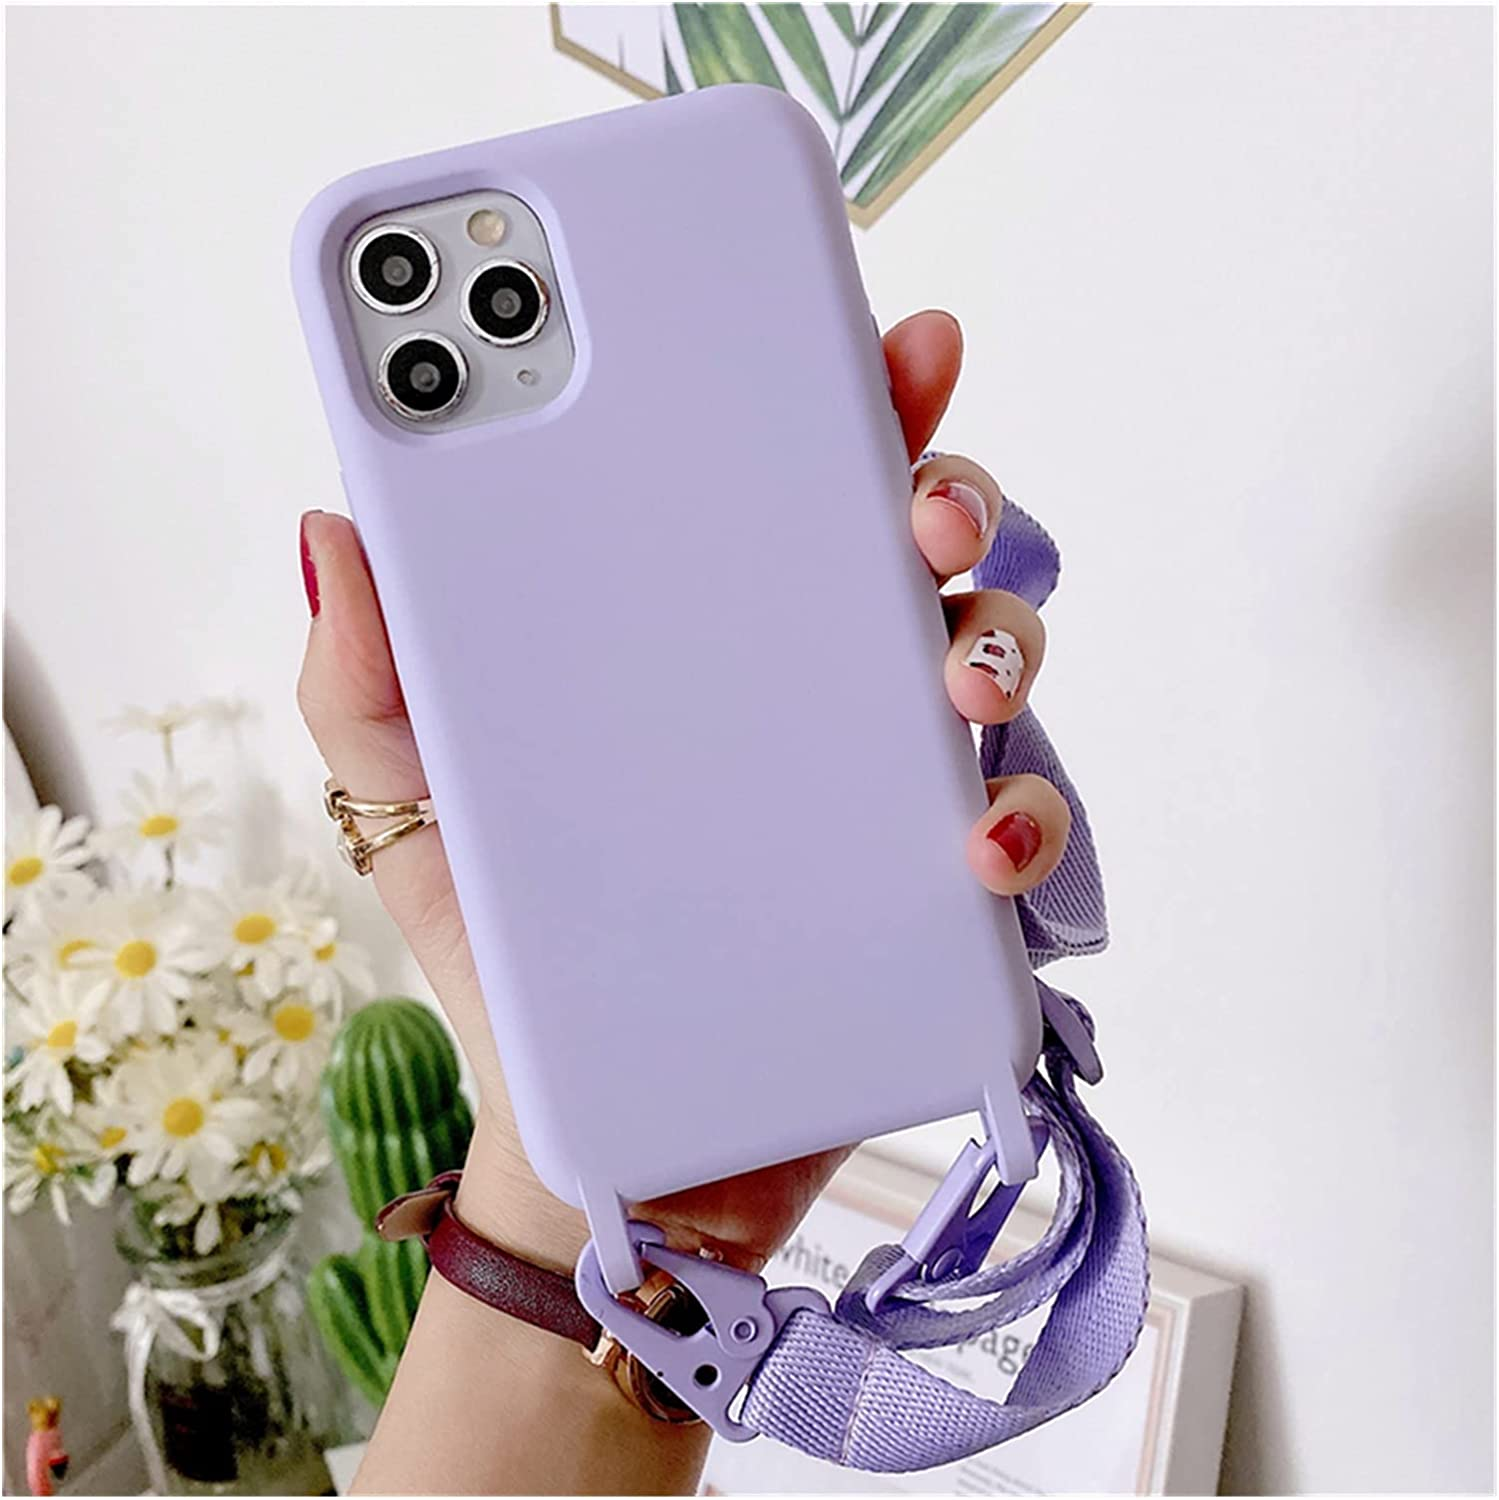 FYHCY YIZHAOYZ Crossbody Necklace Holder Phone Case for iPhone 11 Pro XS 12 Max XR X 6 6S 8 7 Plus SE 2 Lanyard Cord Strap Silicone Back Cover (Color : Purple, Size : for iPhone Xs)